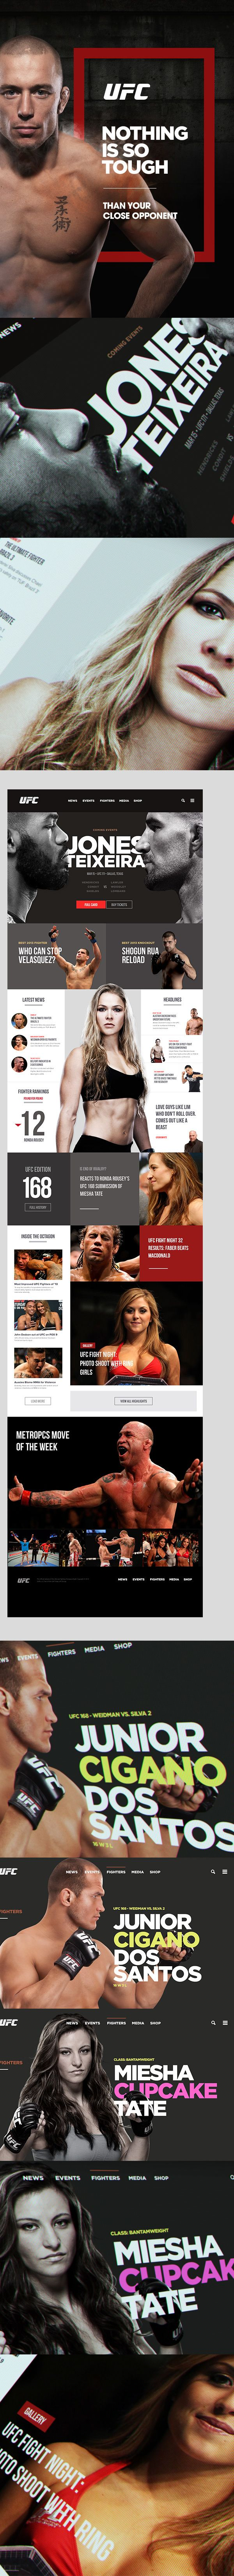 Cool Web Design on the Internet, UFC. #webdesign #webdevelopment #website @ http://www.pinterest.com/alfredchong/web-design/